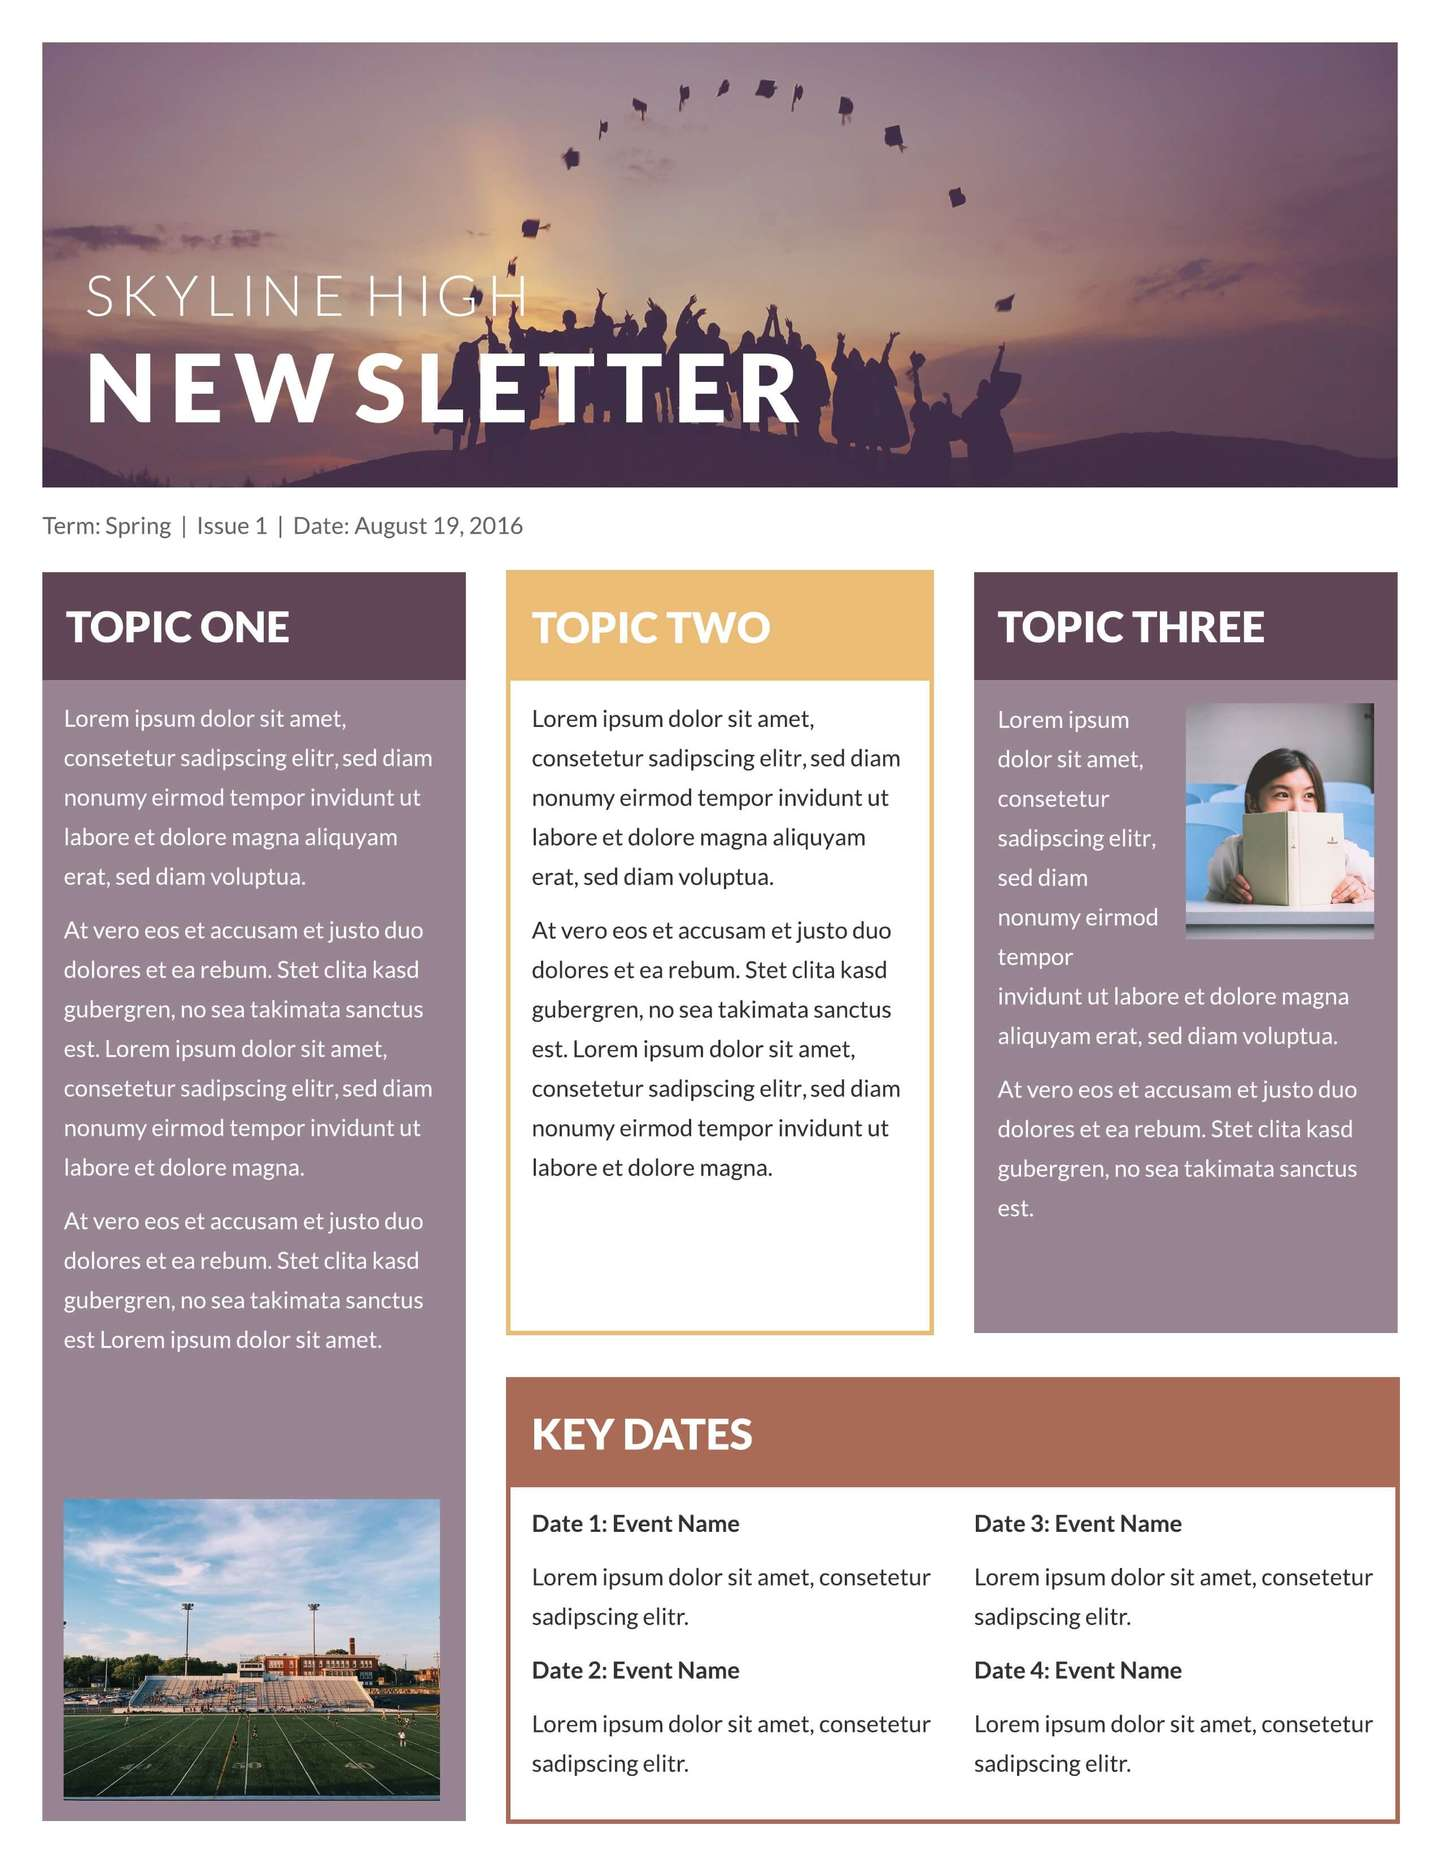 Newsletter sample templates selol ink newsletter sample templates spiritdancerdesigns